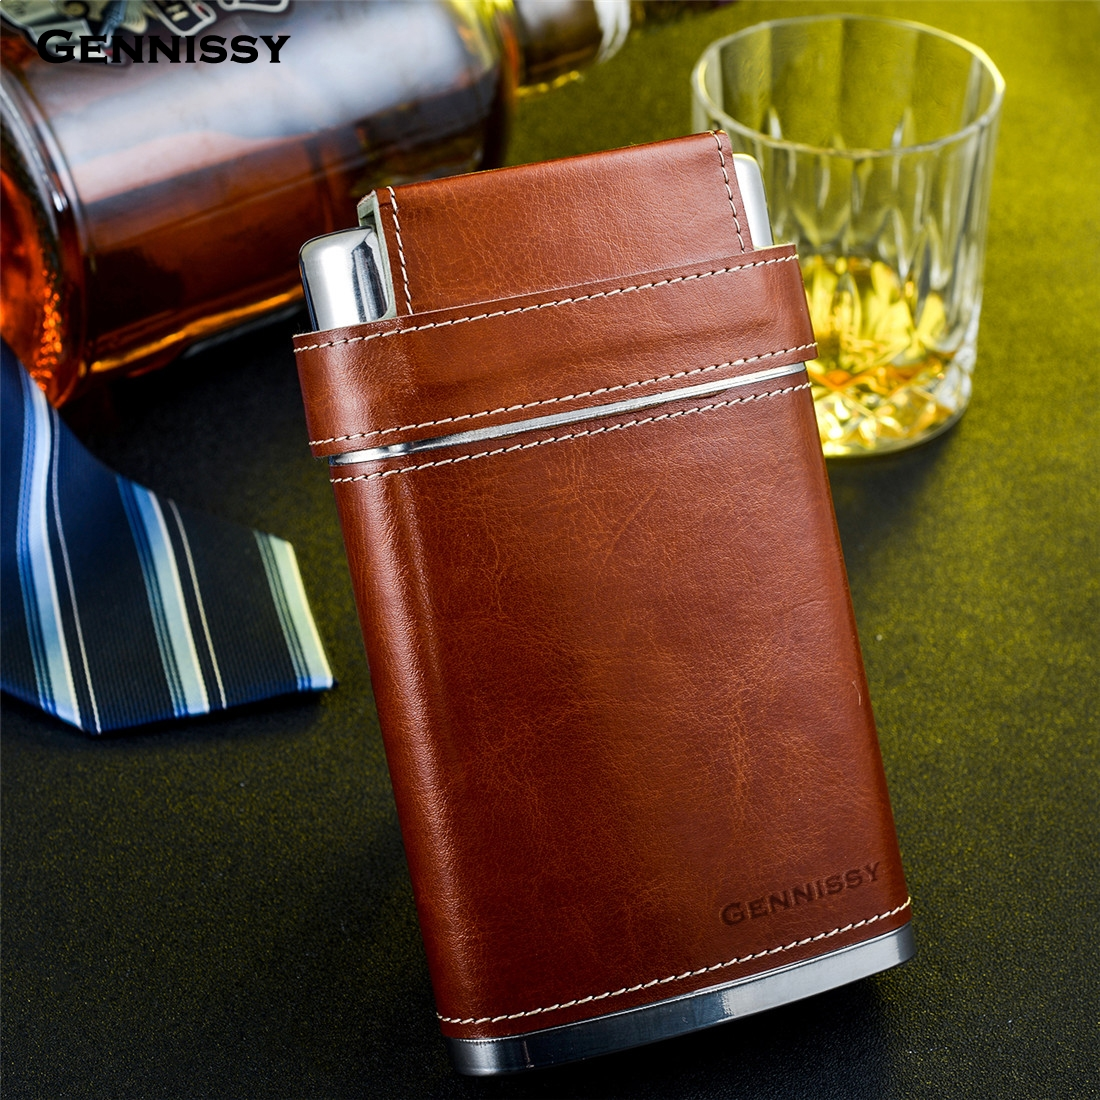 GENNISSY Brown Leather Holster Buckle Hip Flask 8 OZ Stainless Steel Flagons Men Portable Outdoor Whiskey